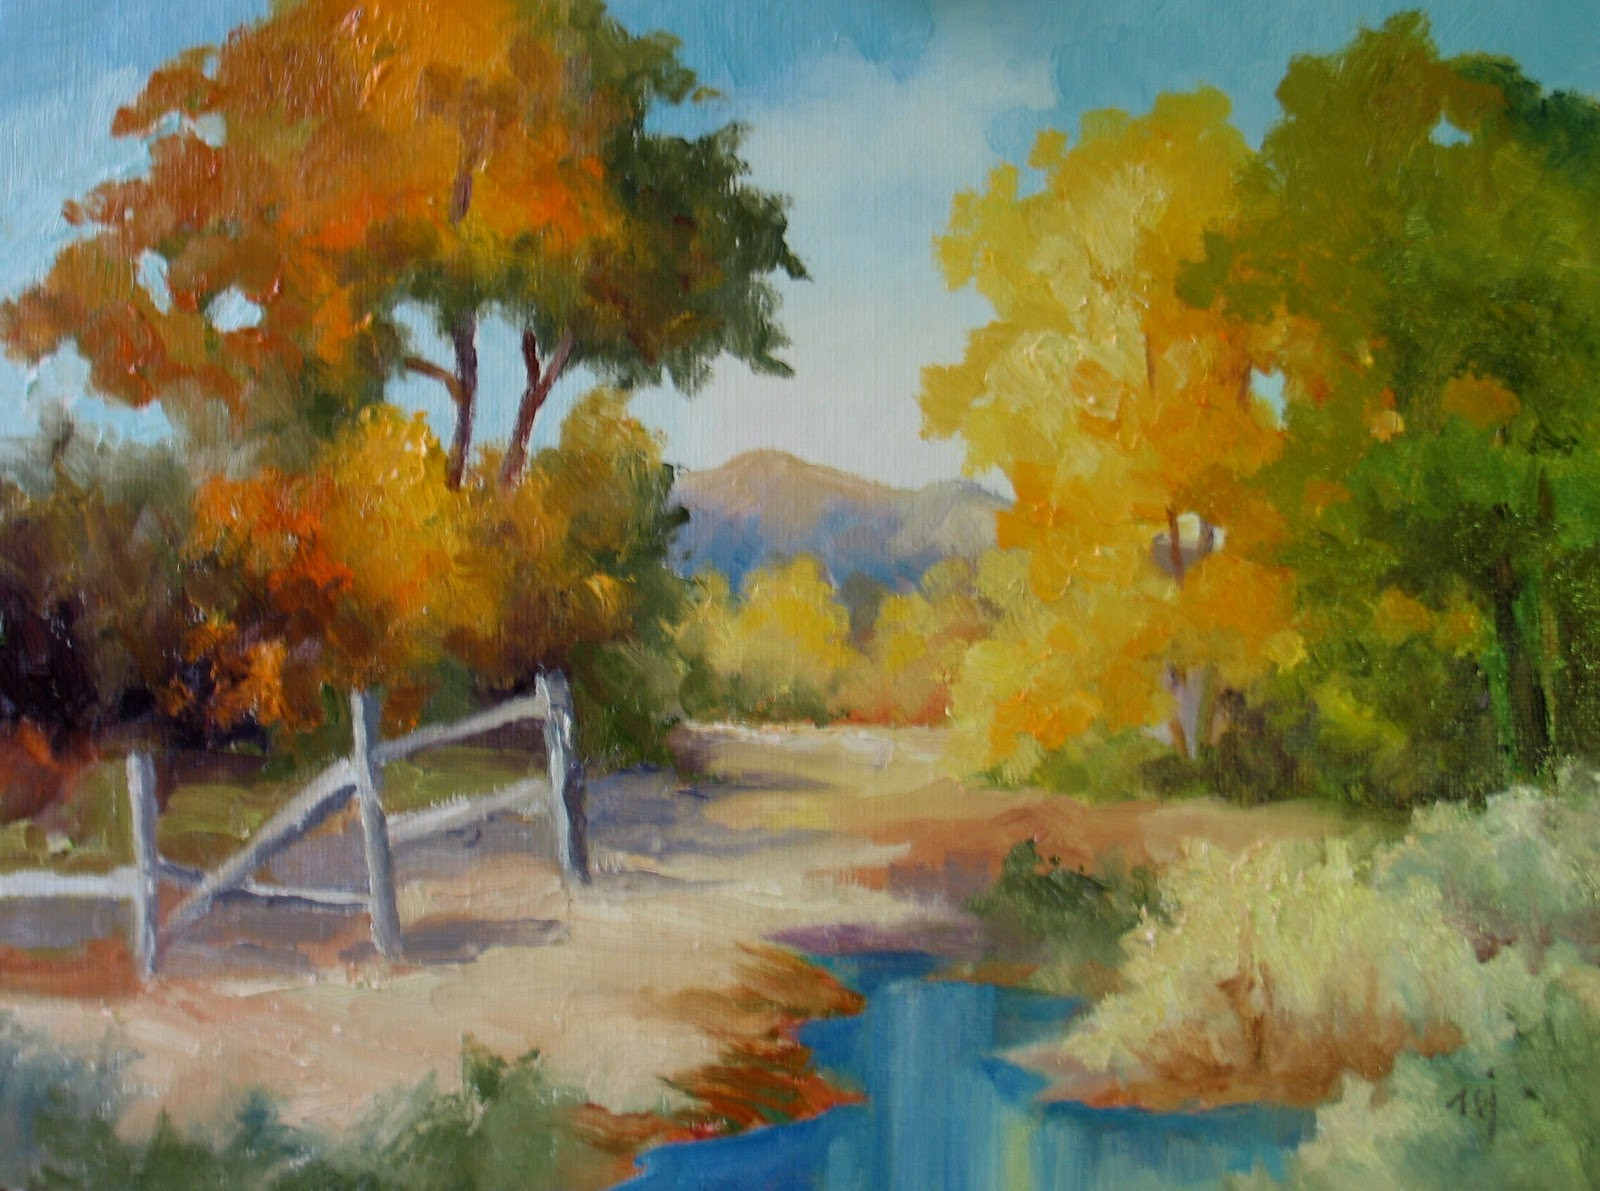 Fall Landscape Painting  Nel s Everyday Painting 12 16 12 12 23 12